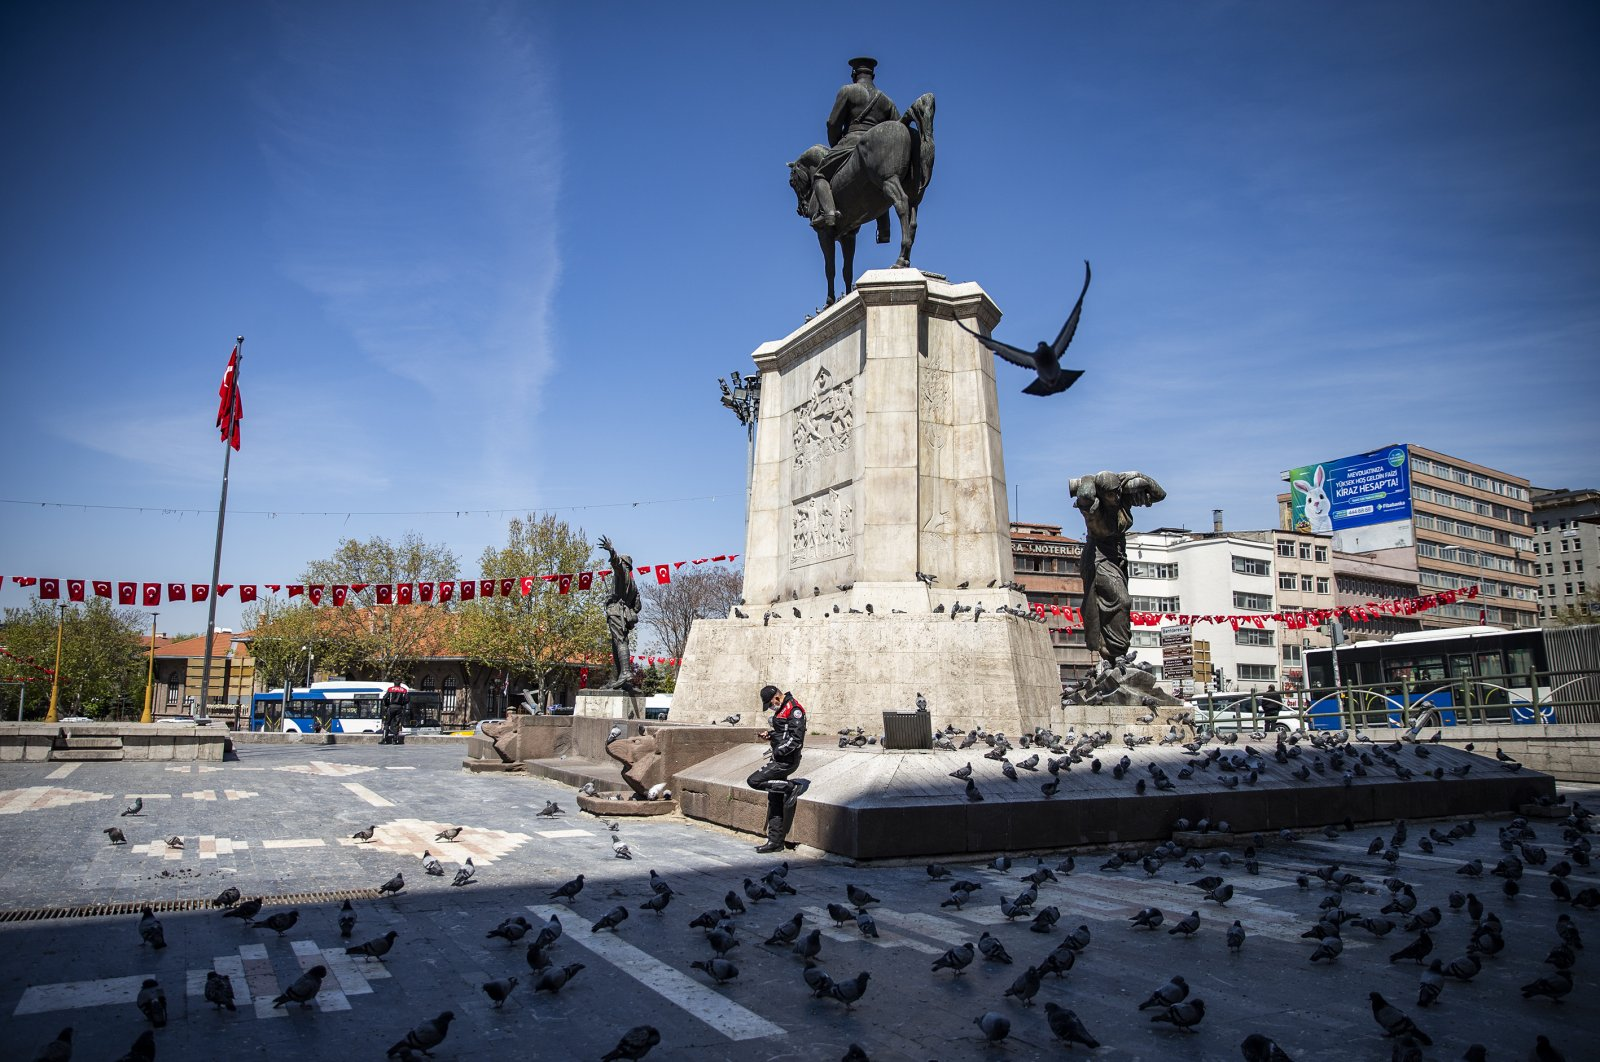 A police officer stands next to a statue at otherwise busy Ulus Square, in Ankara, Turkey, April 28, 2020. (AA Photo)